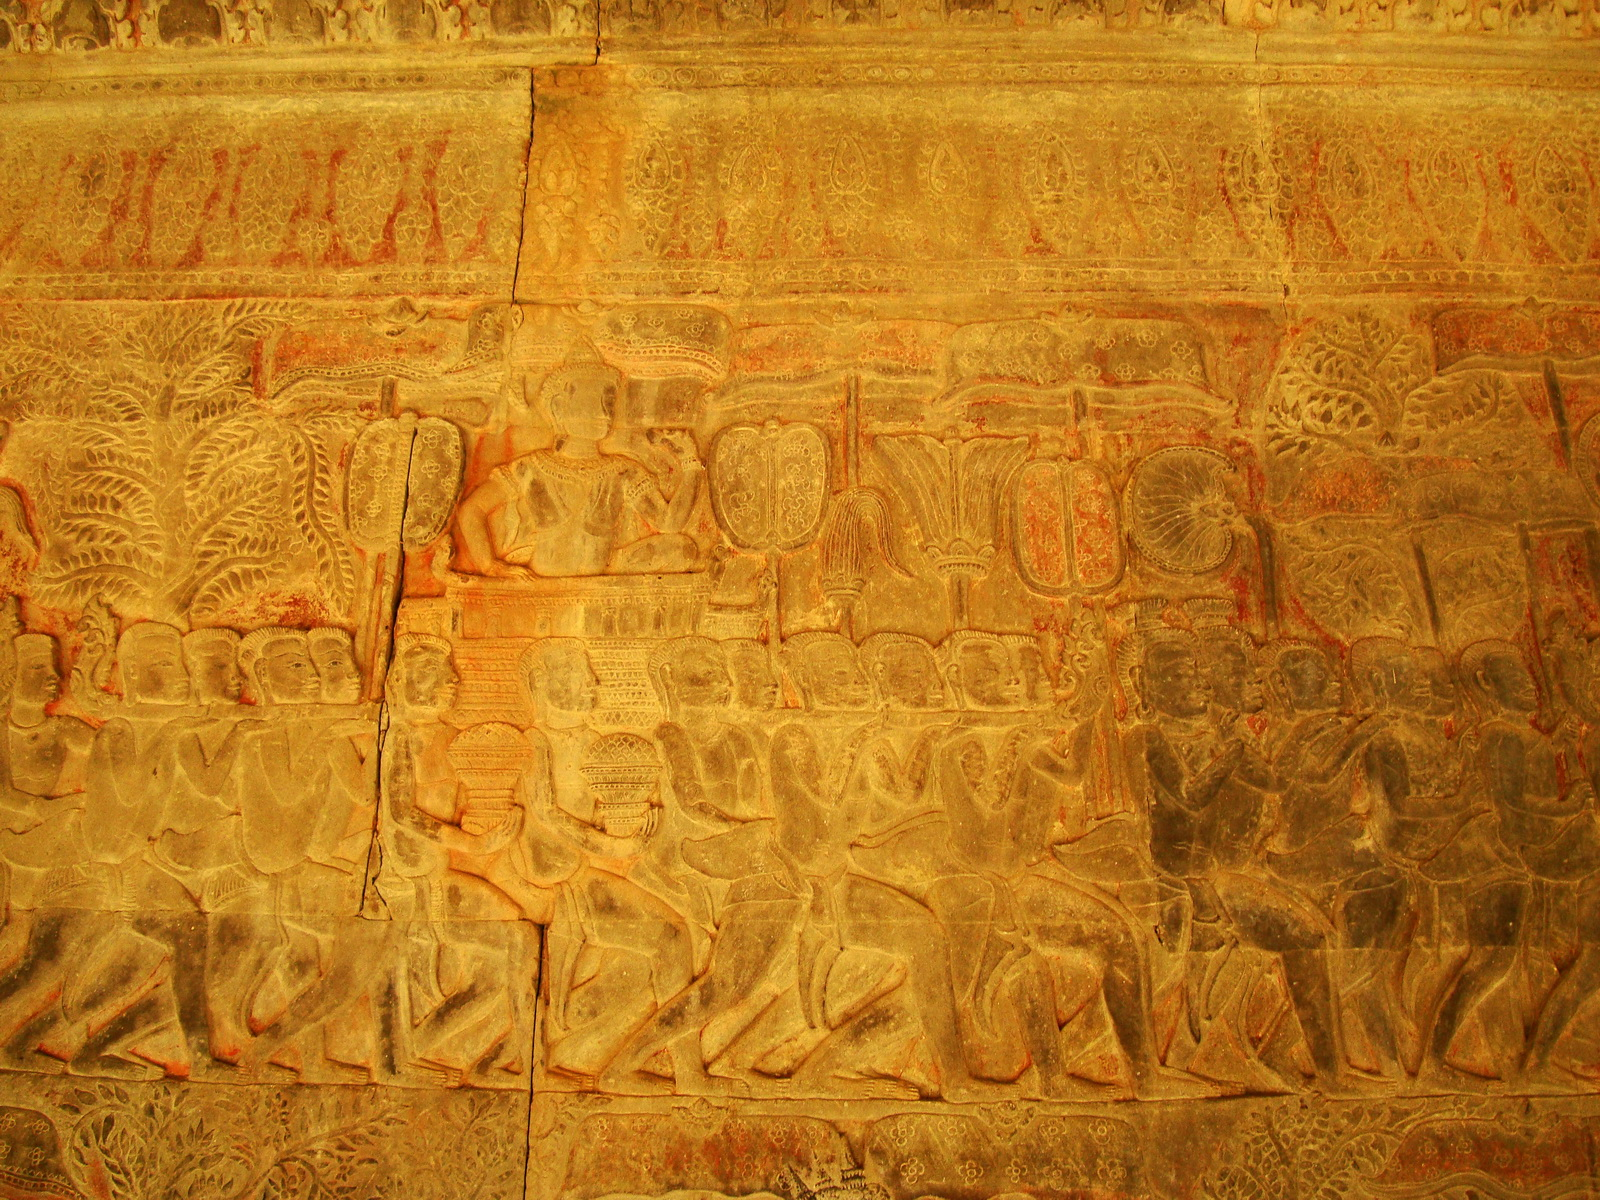 Angkor Wat Bas relief S Gallery E Wing Heavens and Hells 50